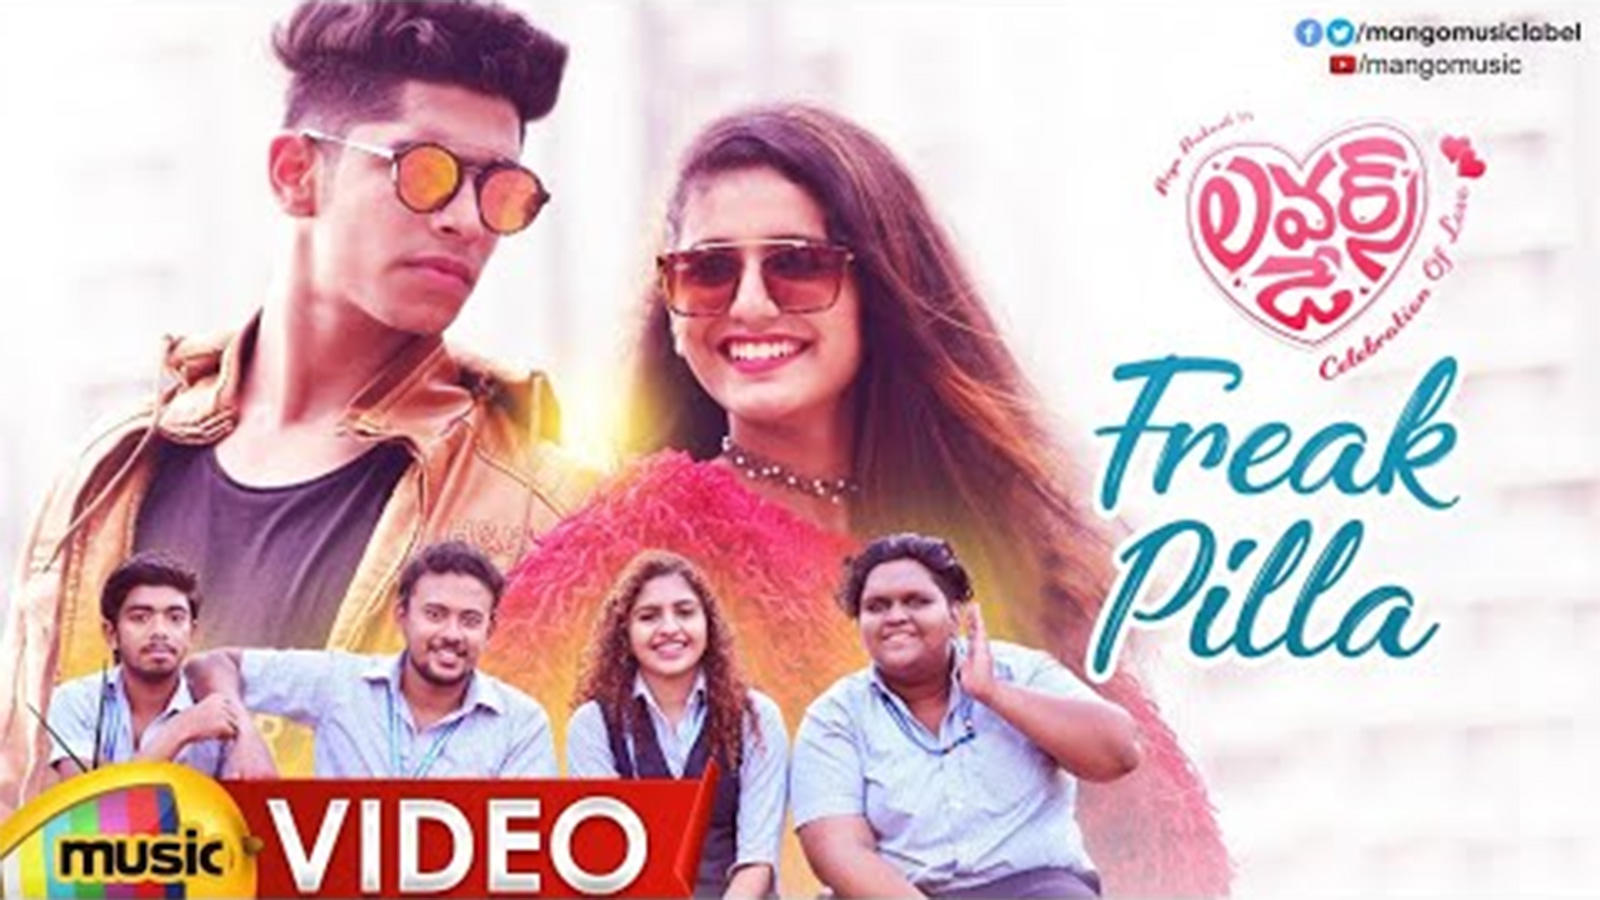 Lovers Day Song Freak Pilla Telugu Video Songs Times Of India